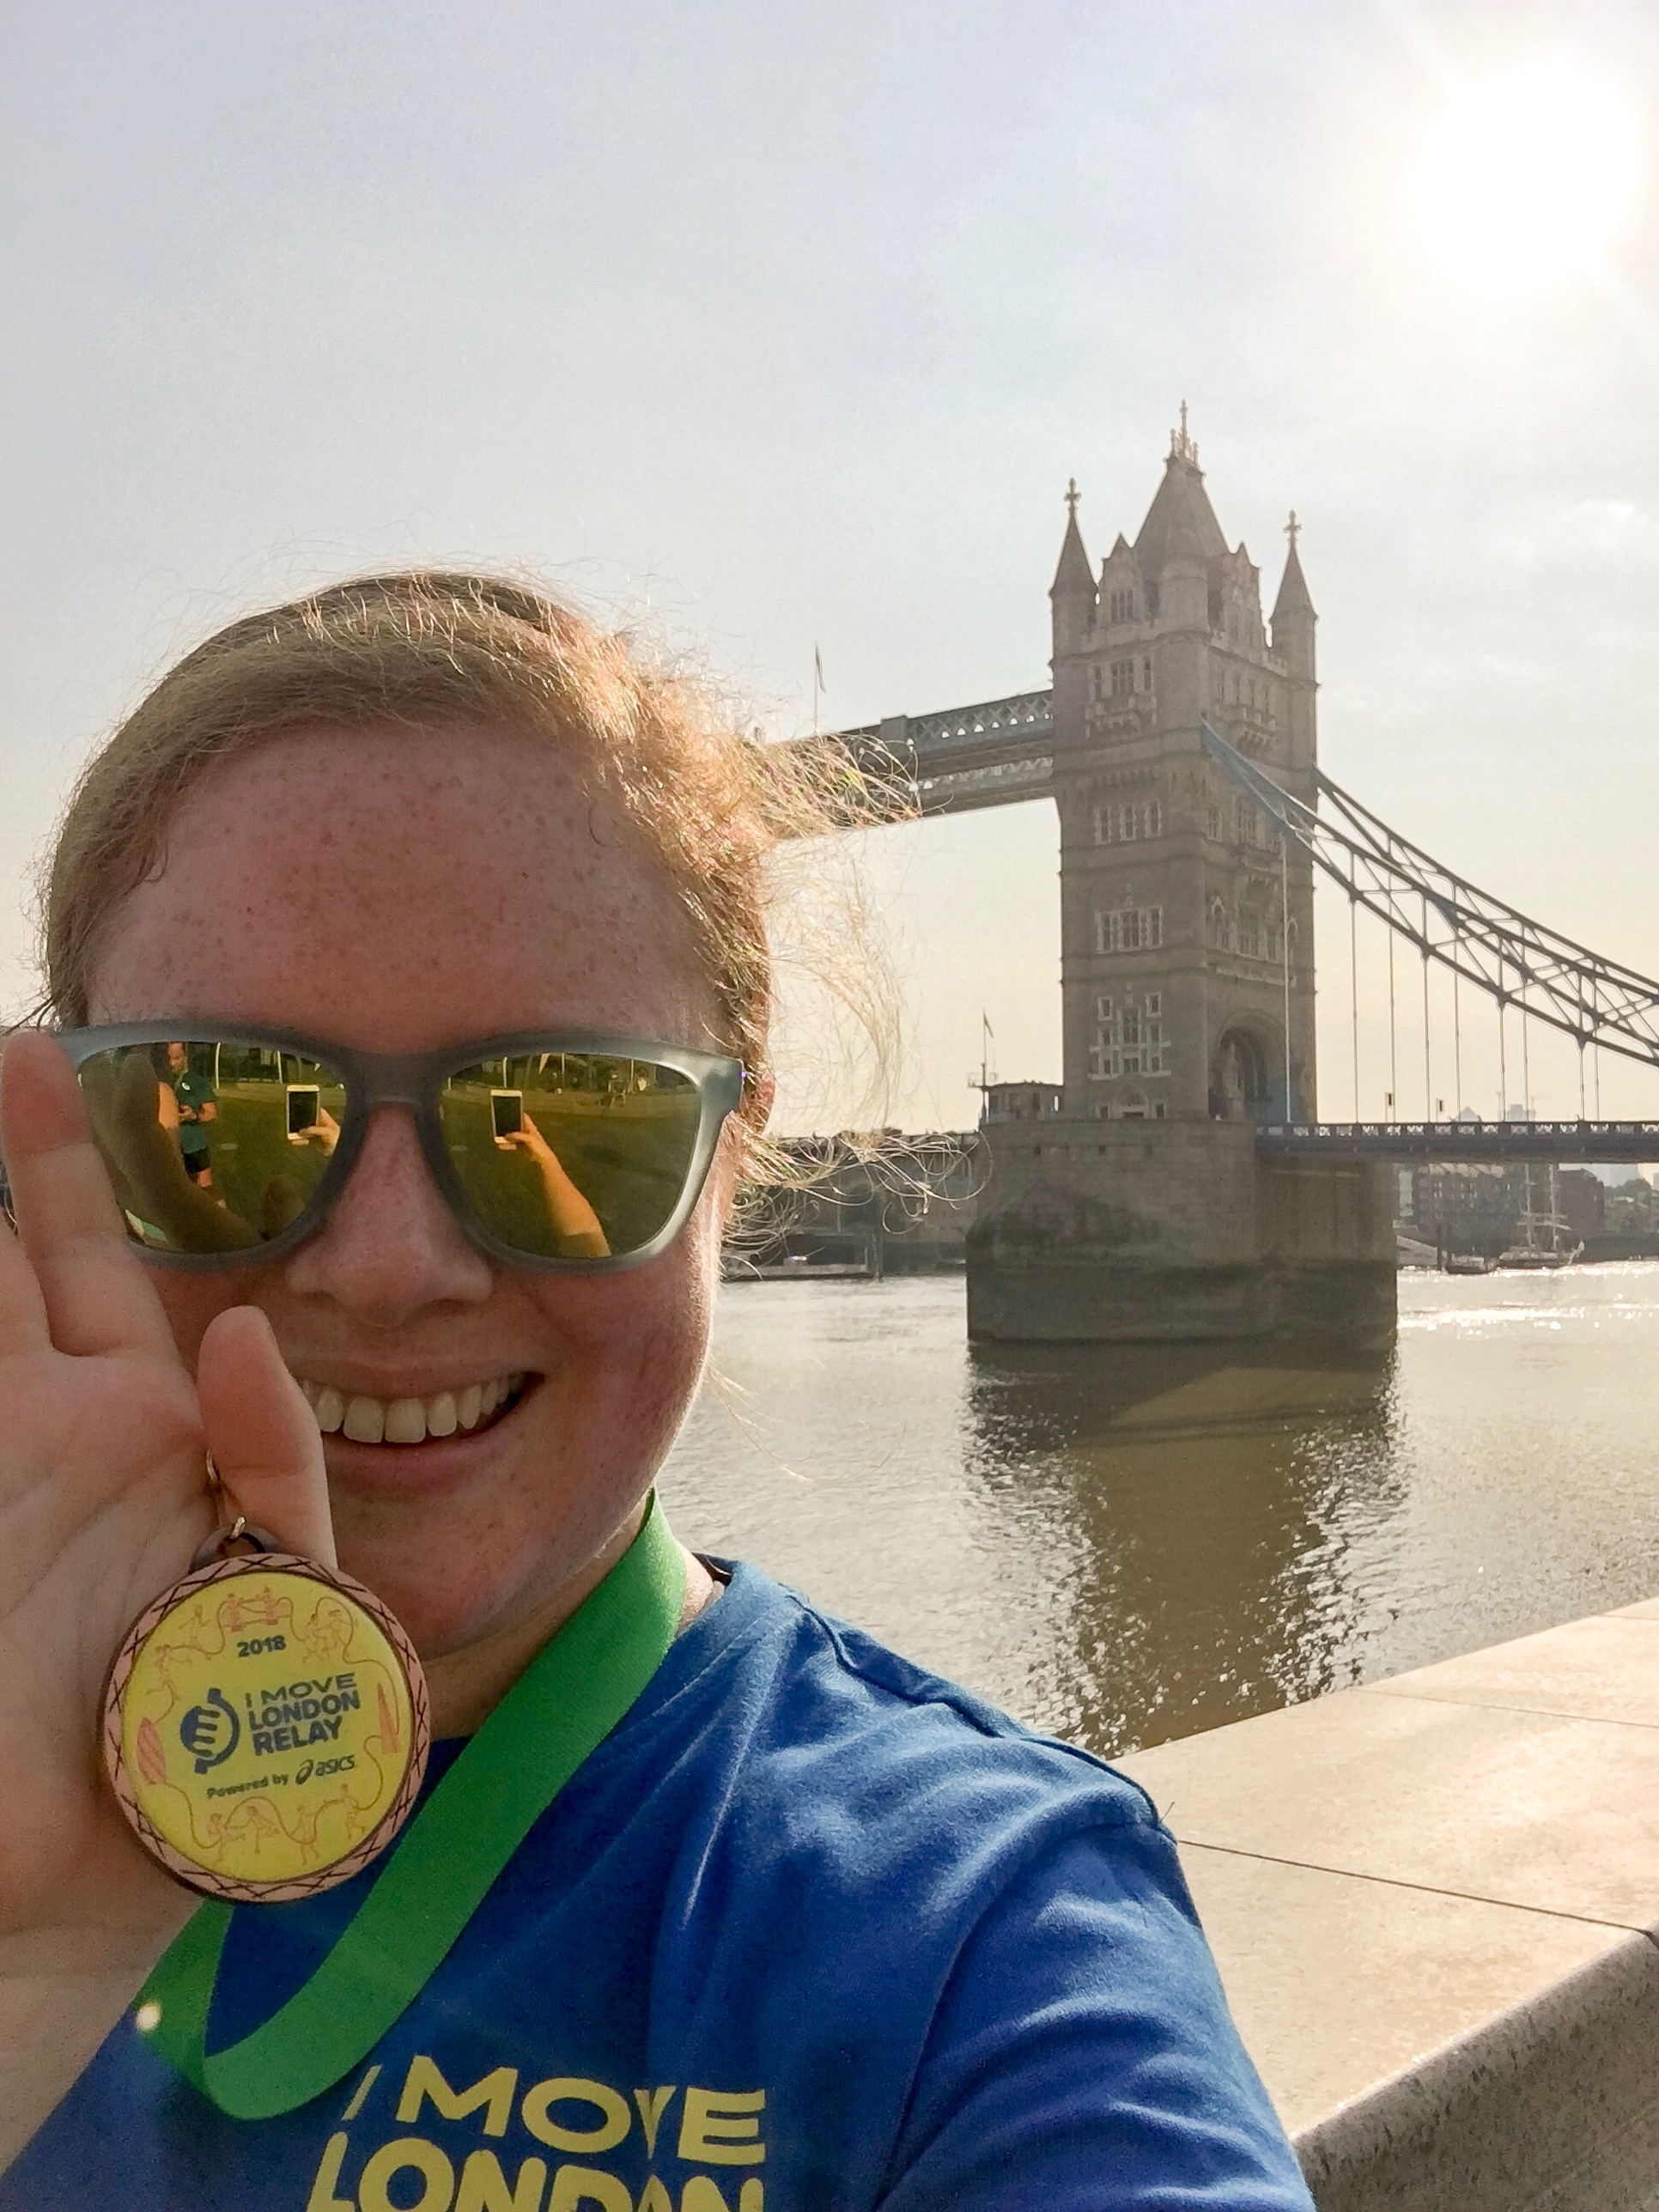 I Move London Relay - A Pretty Place To Play